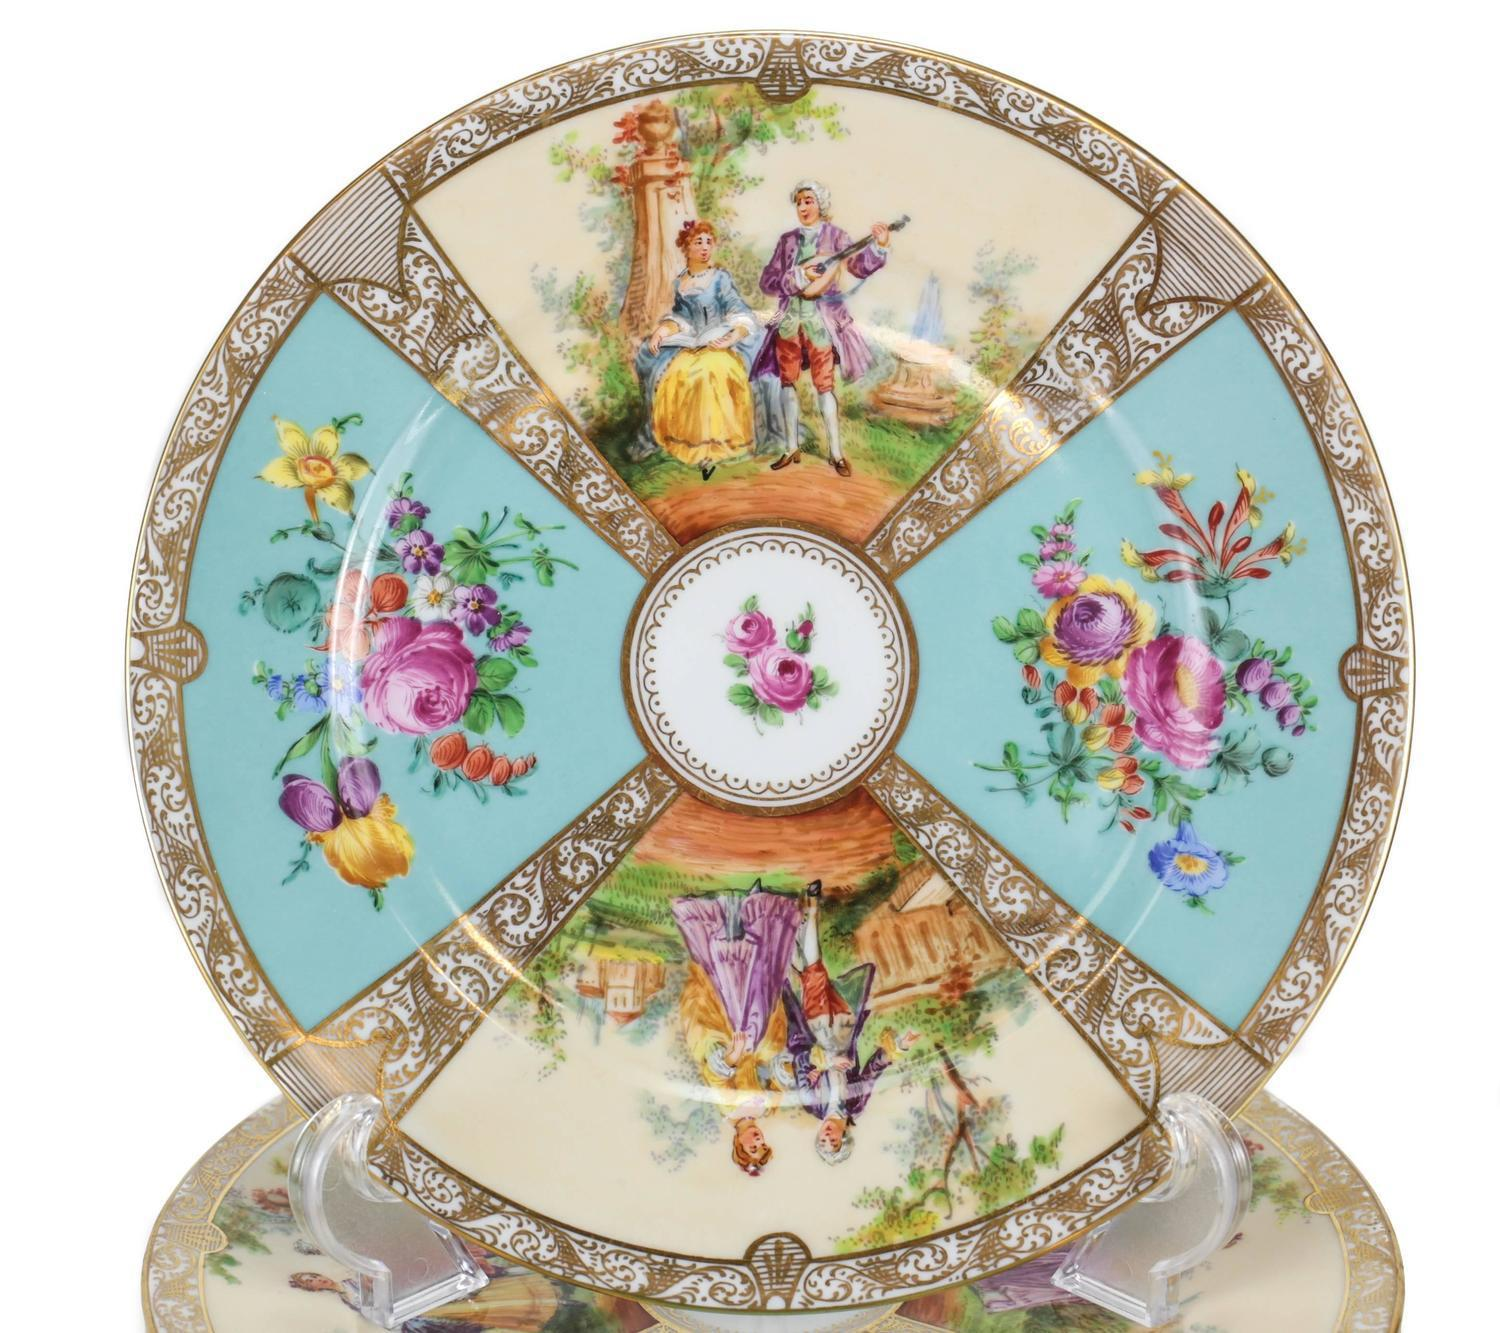 Dresden Porcelain Hand-Painted Cabinet Plates by Ambrosius Lamm - Set of 12 - Image  sc 1 st  Chairish & Dresden Porcelain Hand-Painted Cabinet Plates by Ambrosius Lamm ...